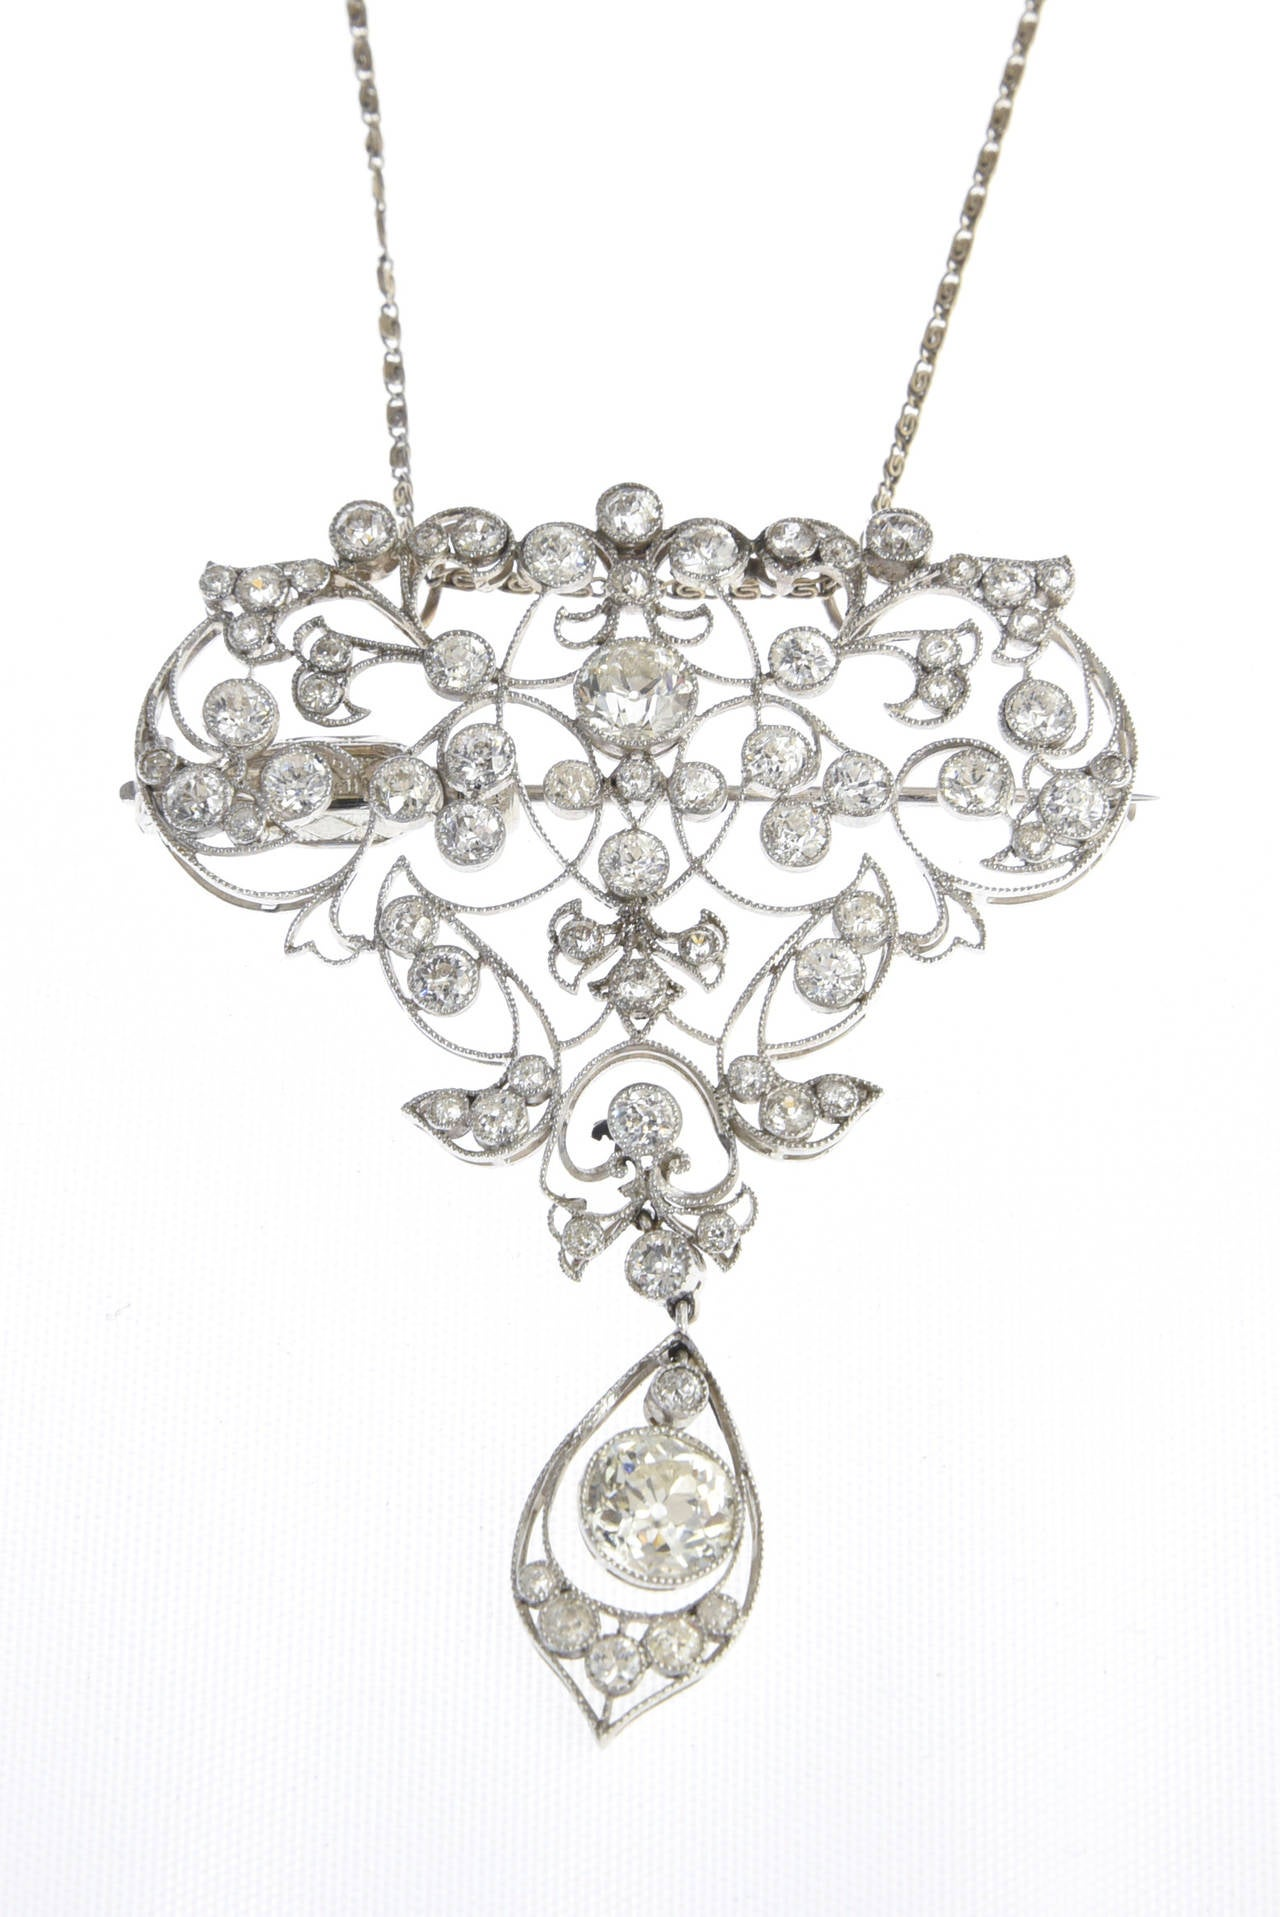 Women's Belle Époque Diamond Platinum Floral Brooch Pendant For Sale